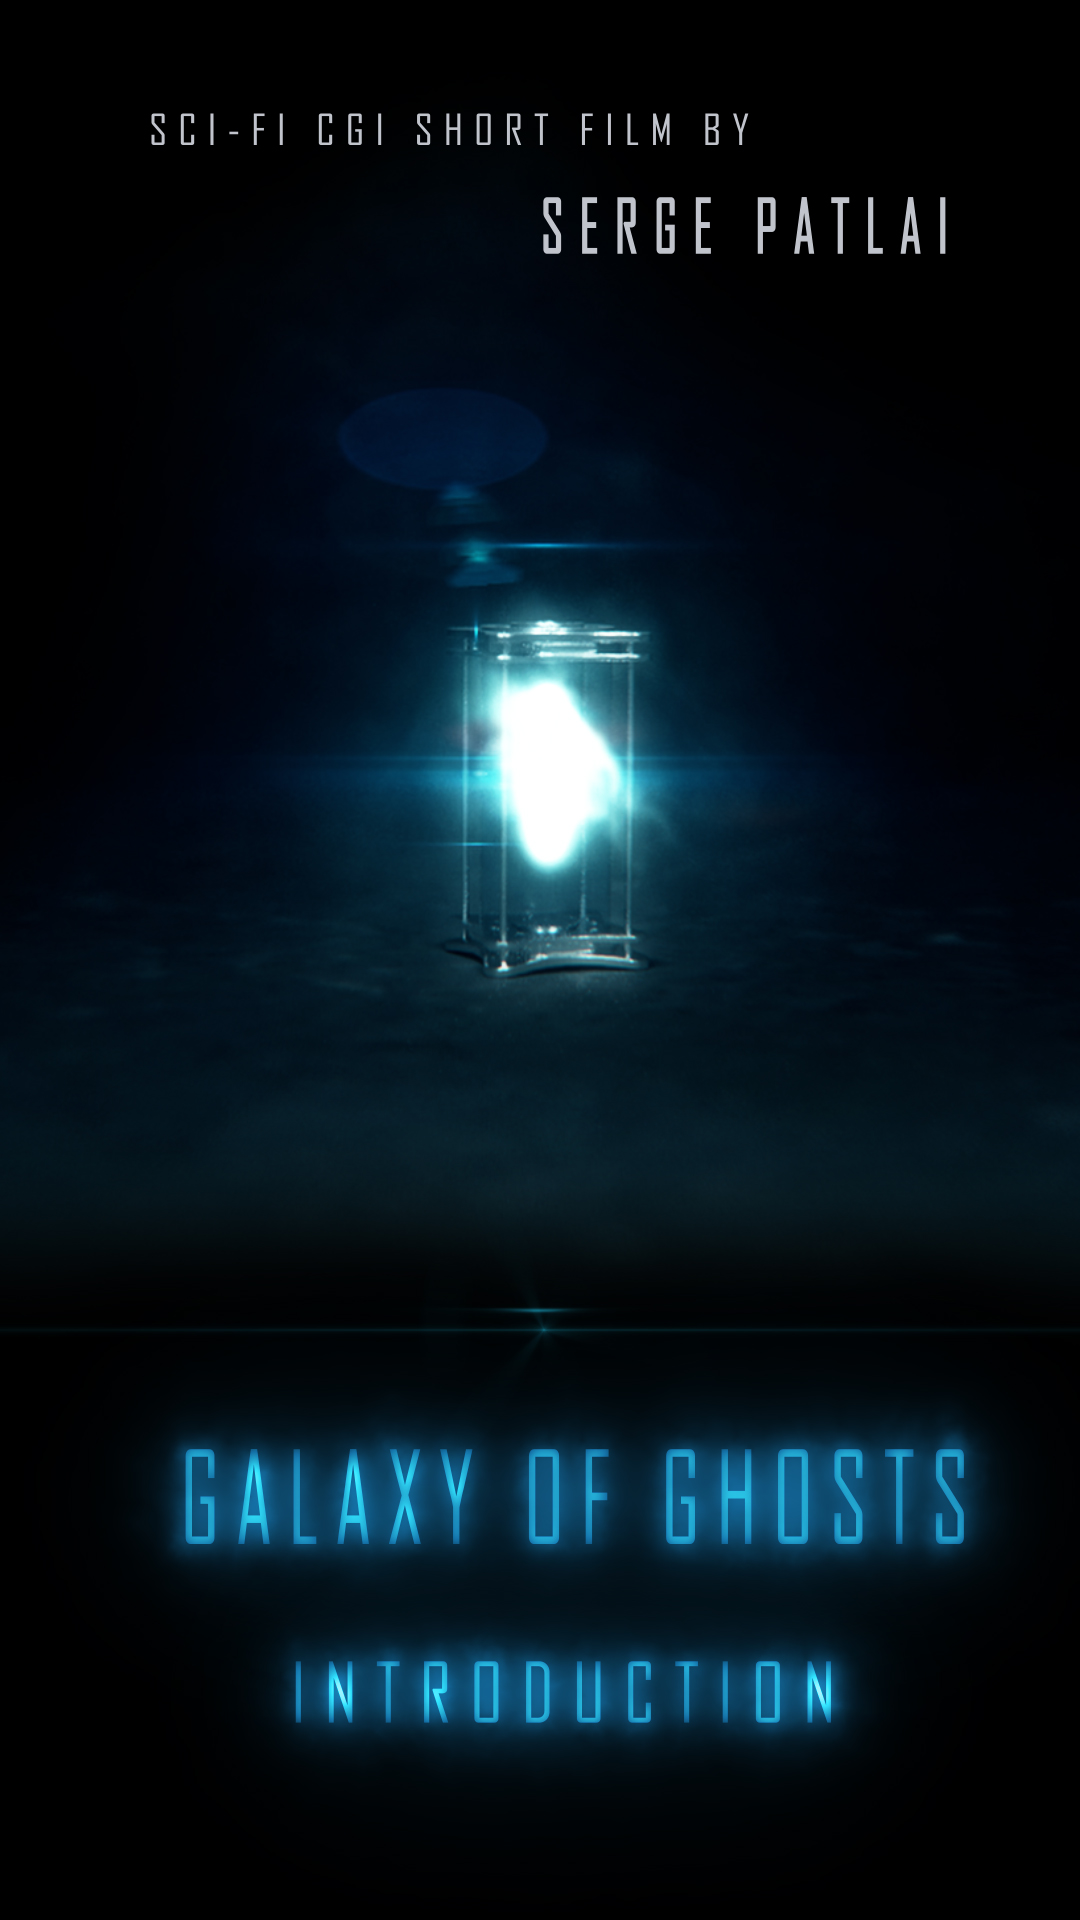 Galaxy of Ghosts: Introduction